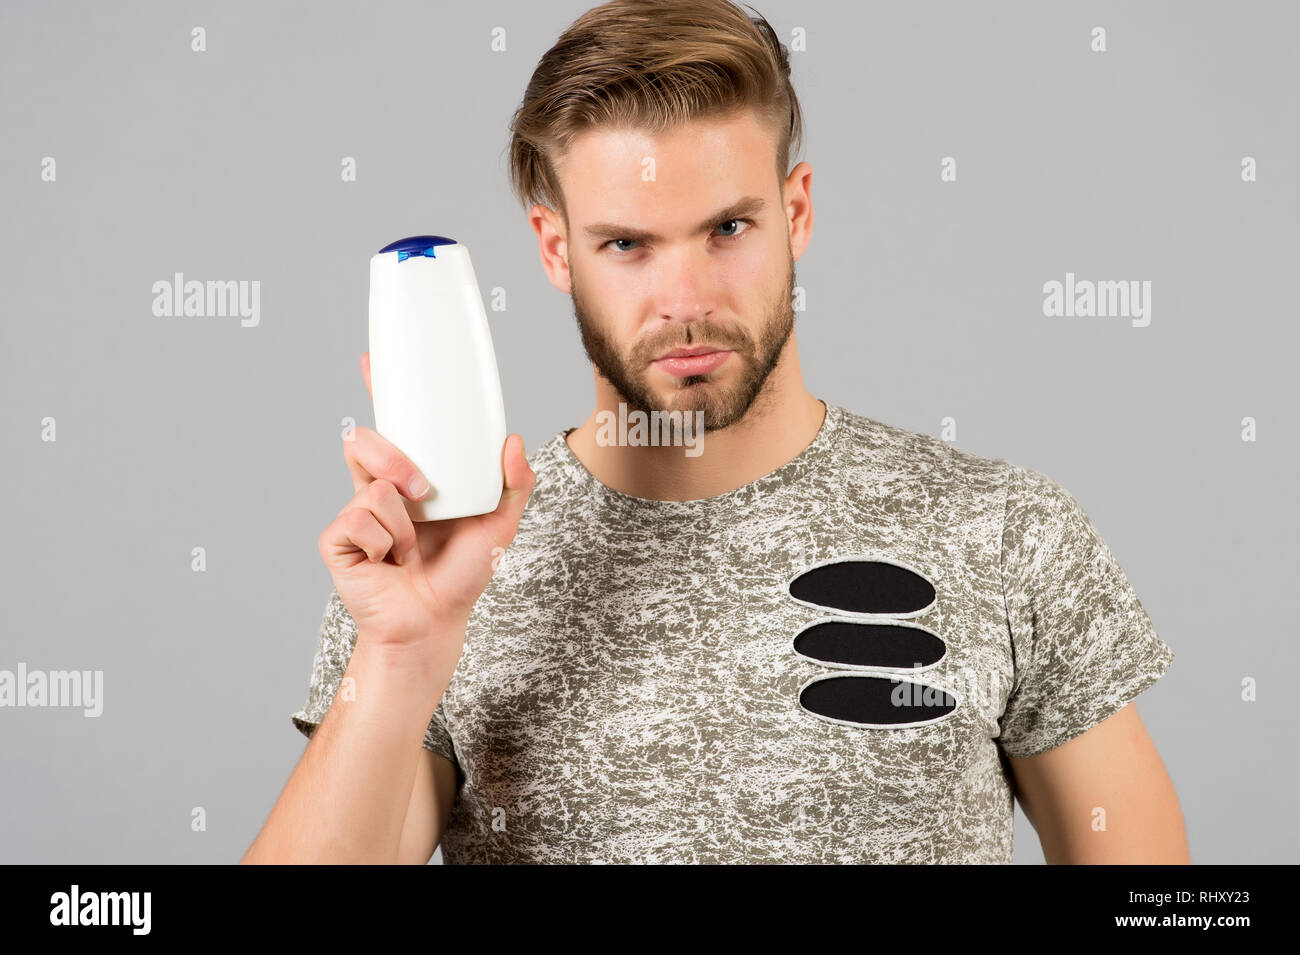 Man enjoy freshness after washing hair with shampoo. Guy with hairstyle holds bottle shampoo, copy space. Hair care and beauty supplies concept. Man strict face holds shampoo bottle, grey background. Stock Photo